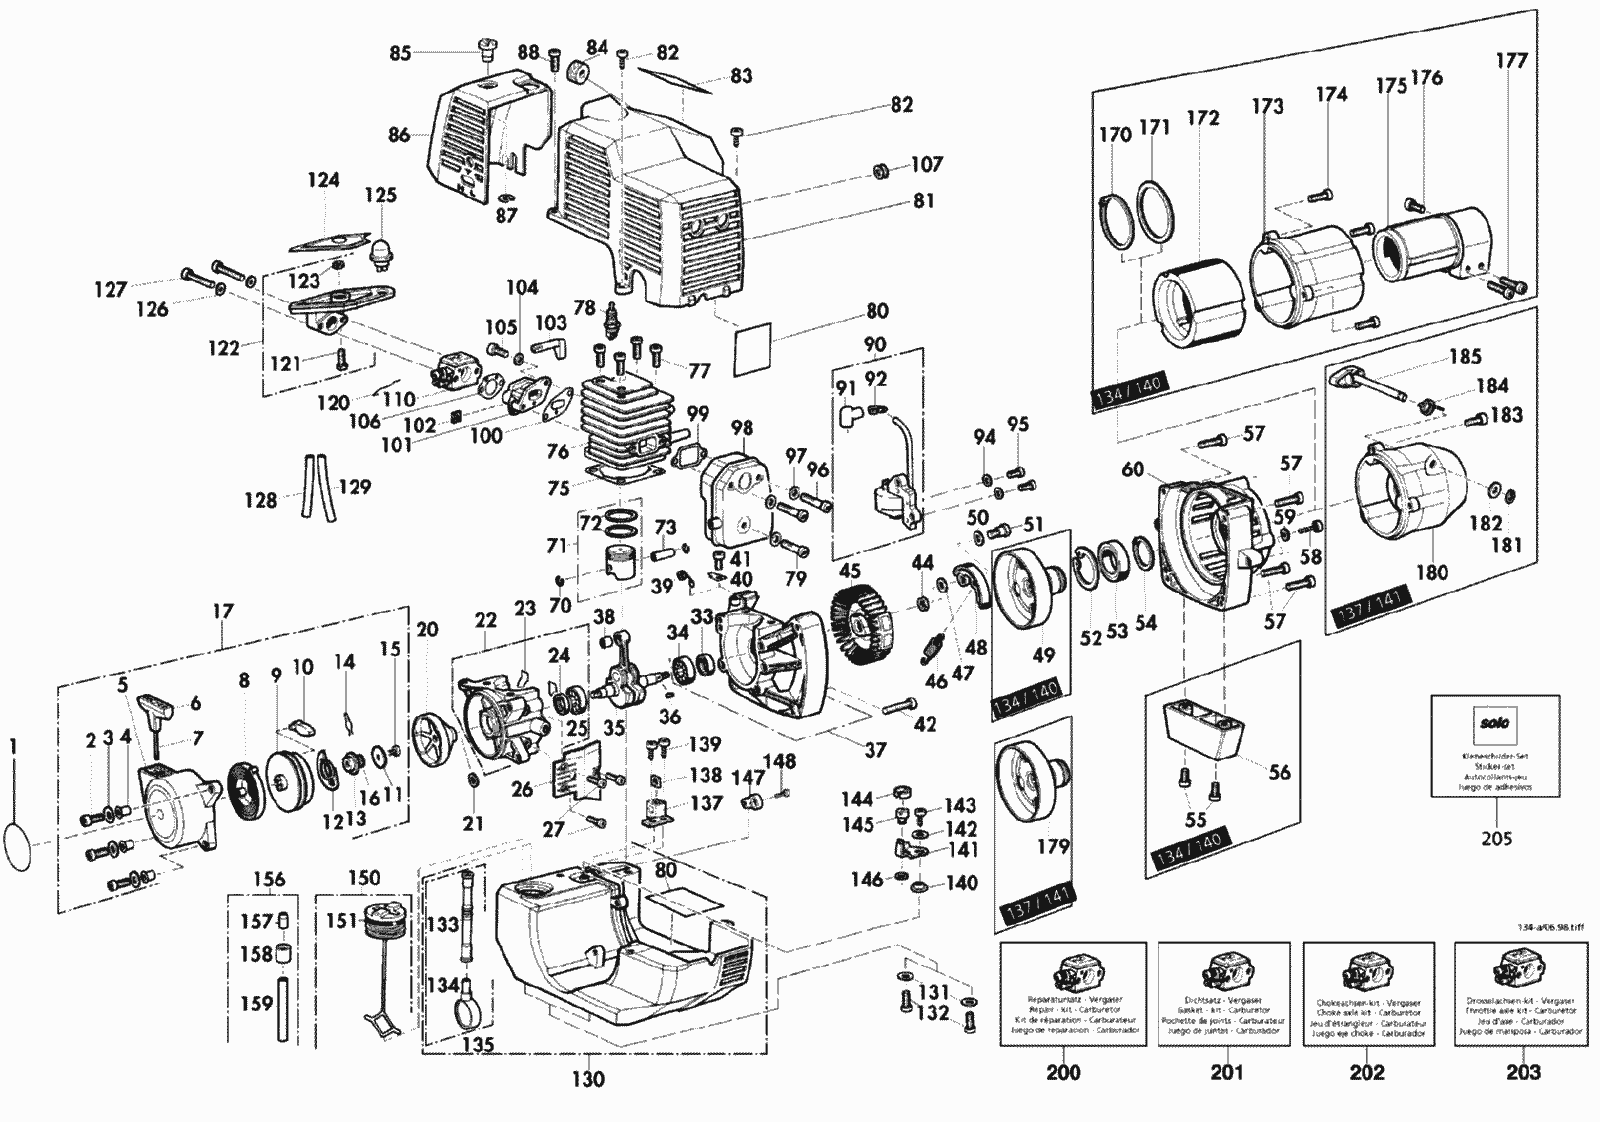 spare parts lists for solo motorised trimmers engine